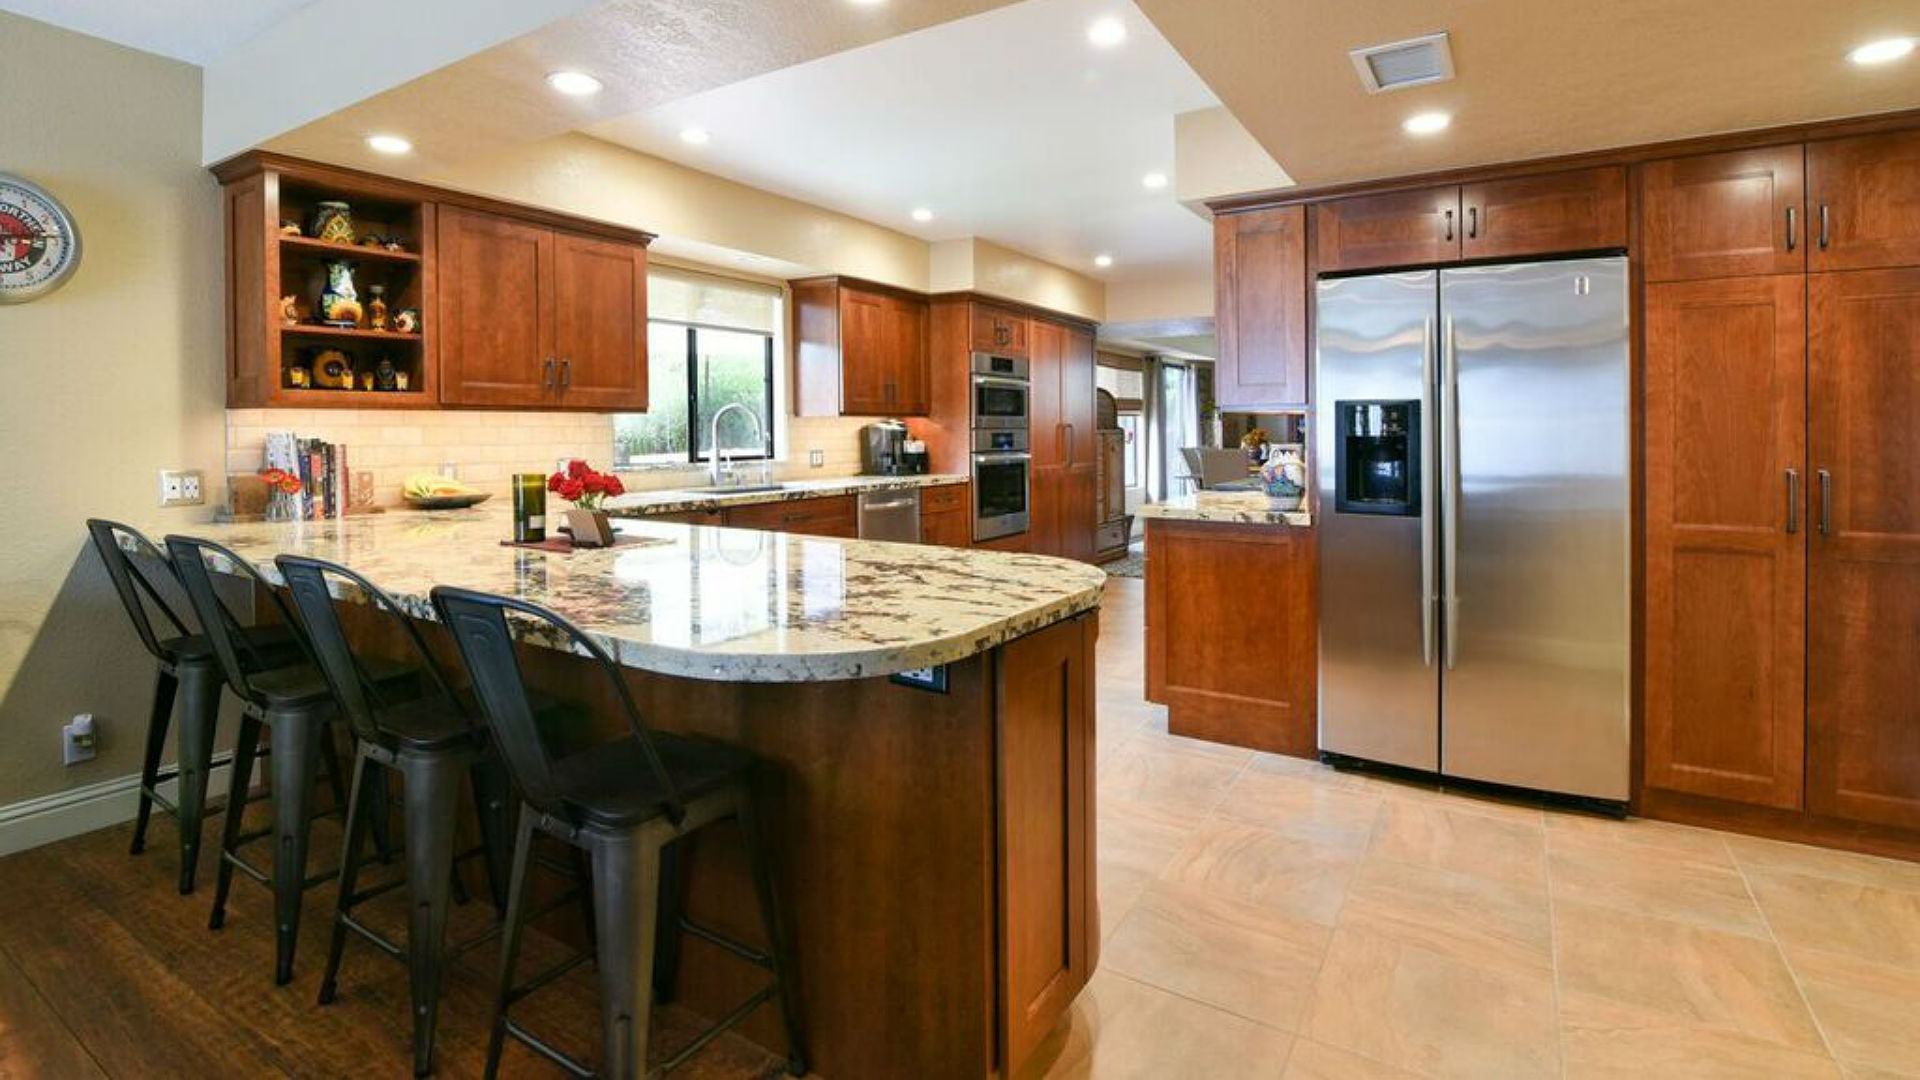 Hahka Kitchens Goleta-8